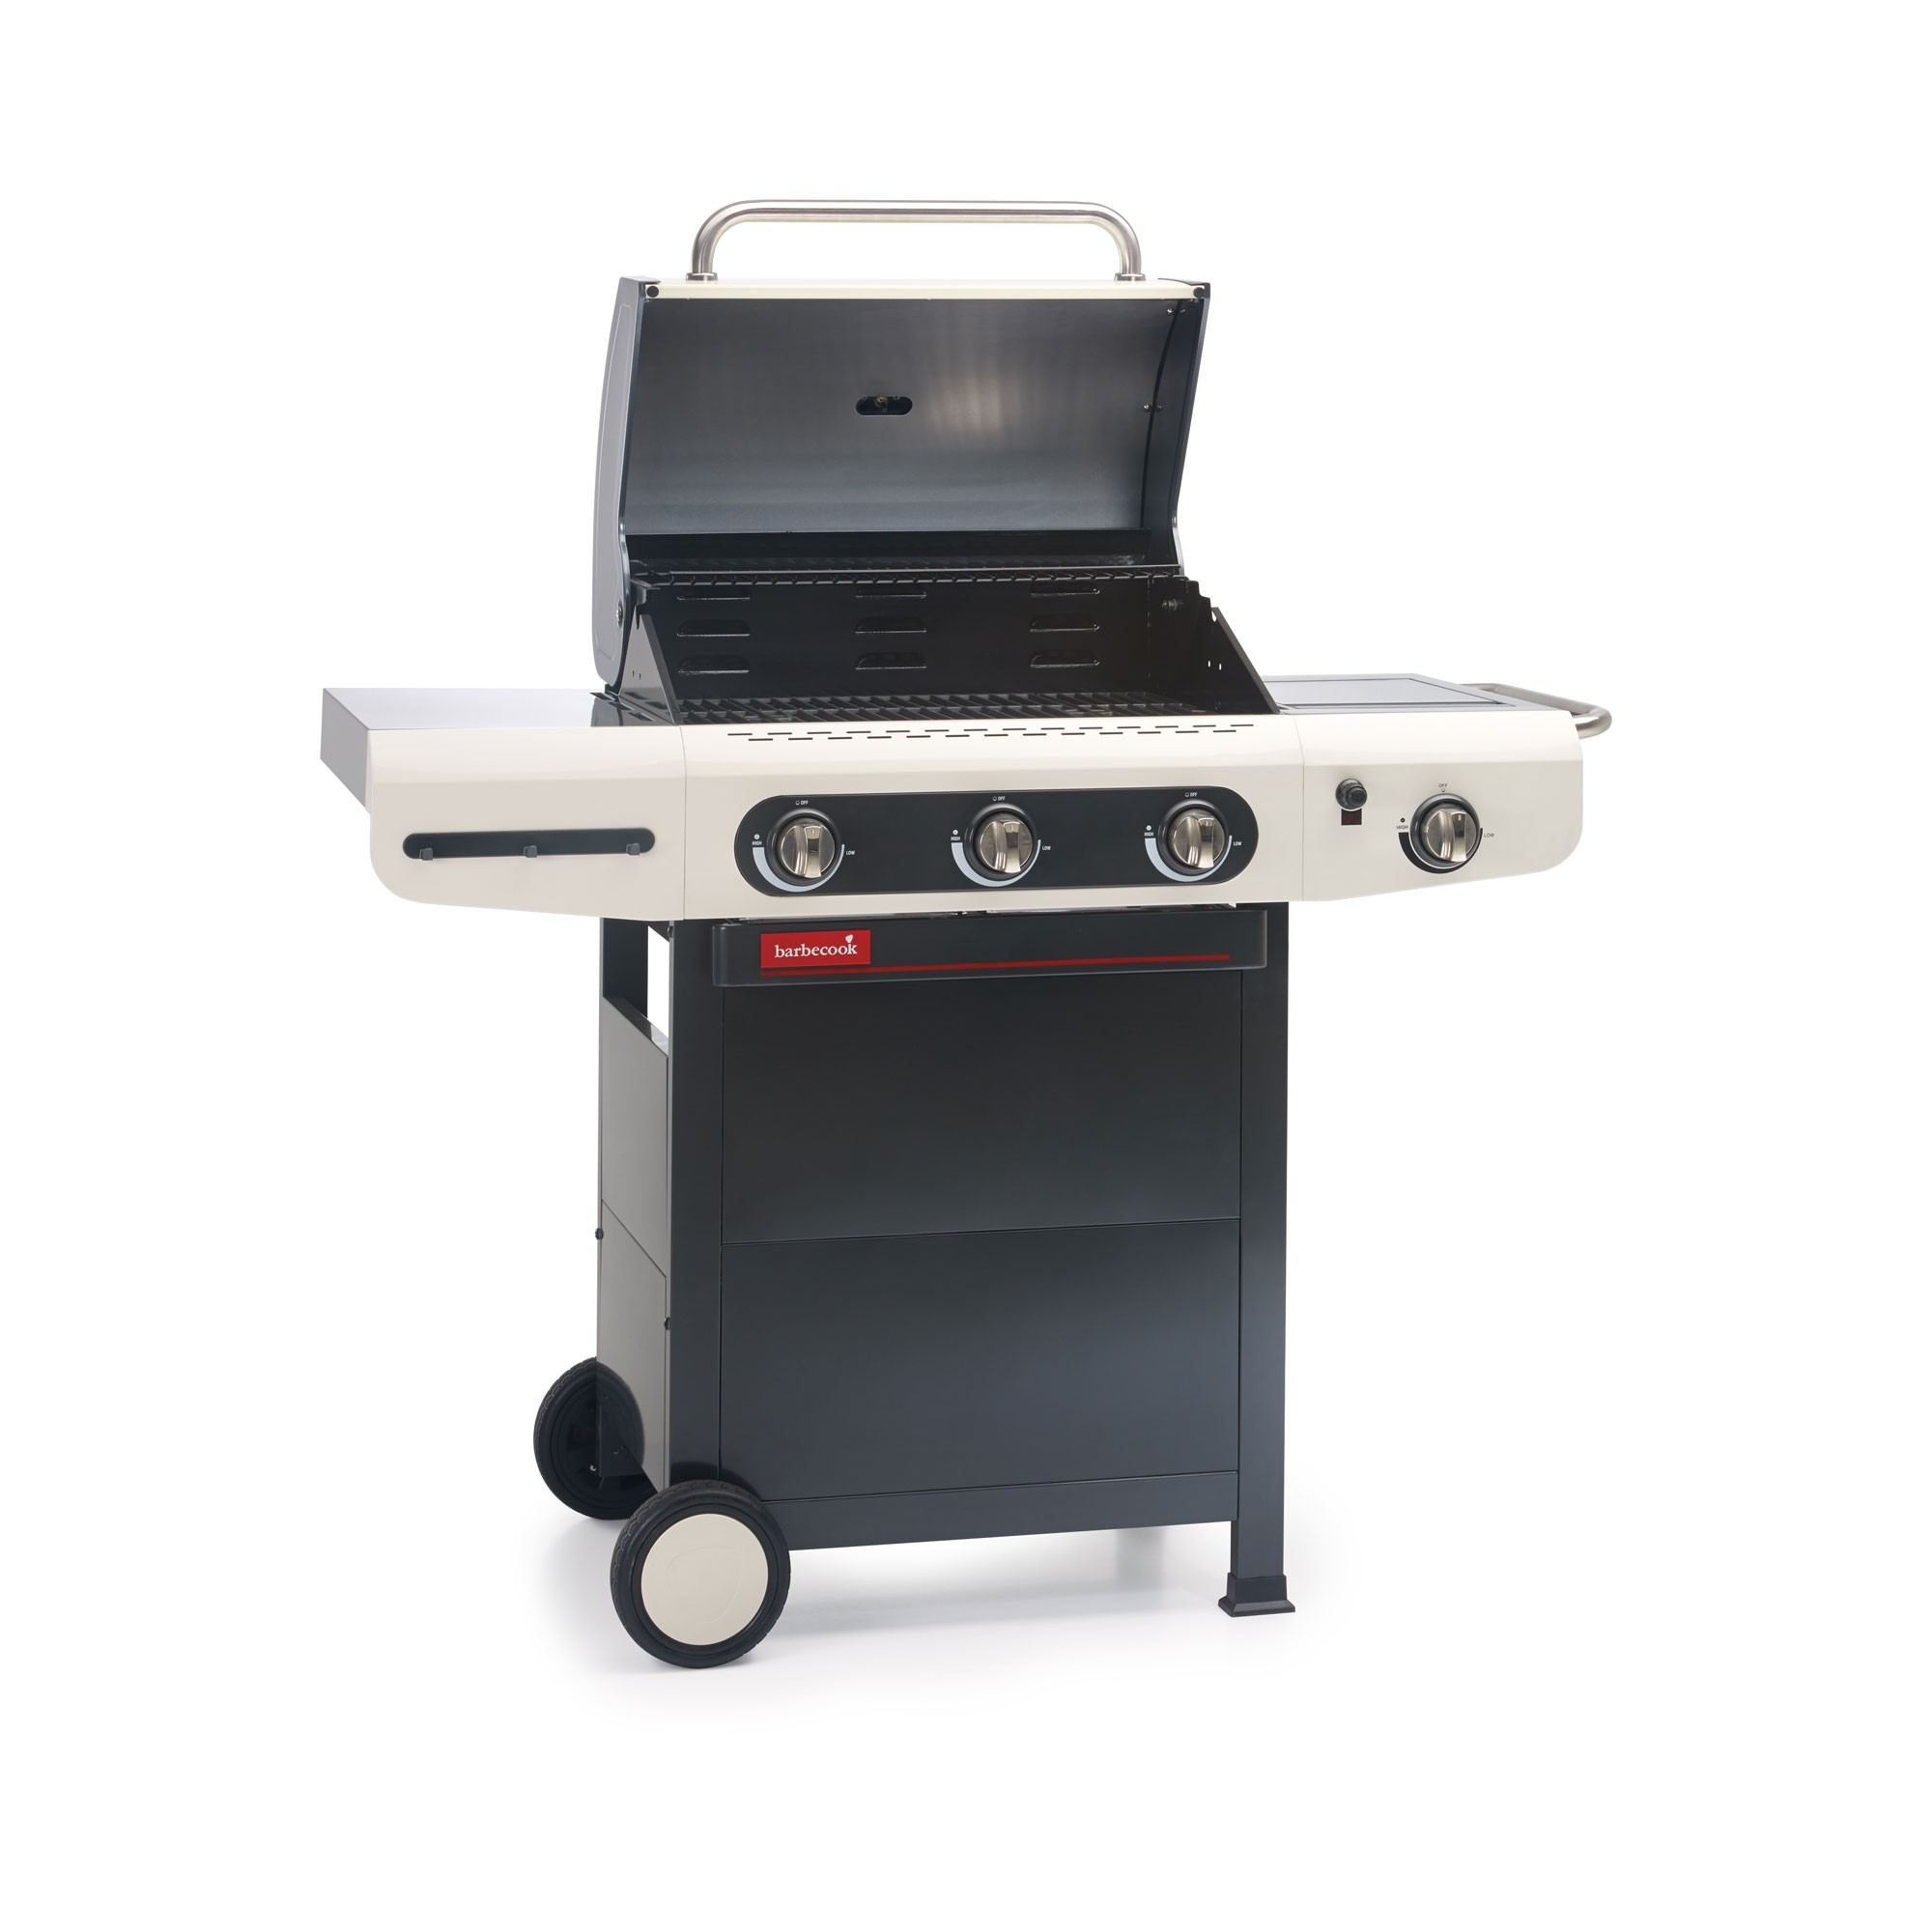 Gasgrill gasgrillwagen barbecook siesta 310 creme for Giordano shop barbecue a gas